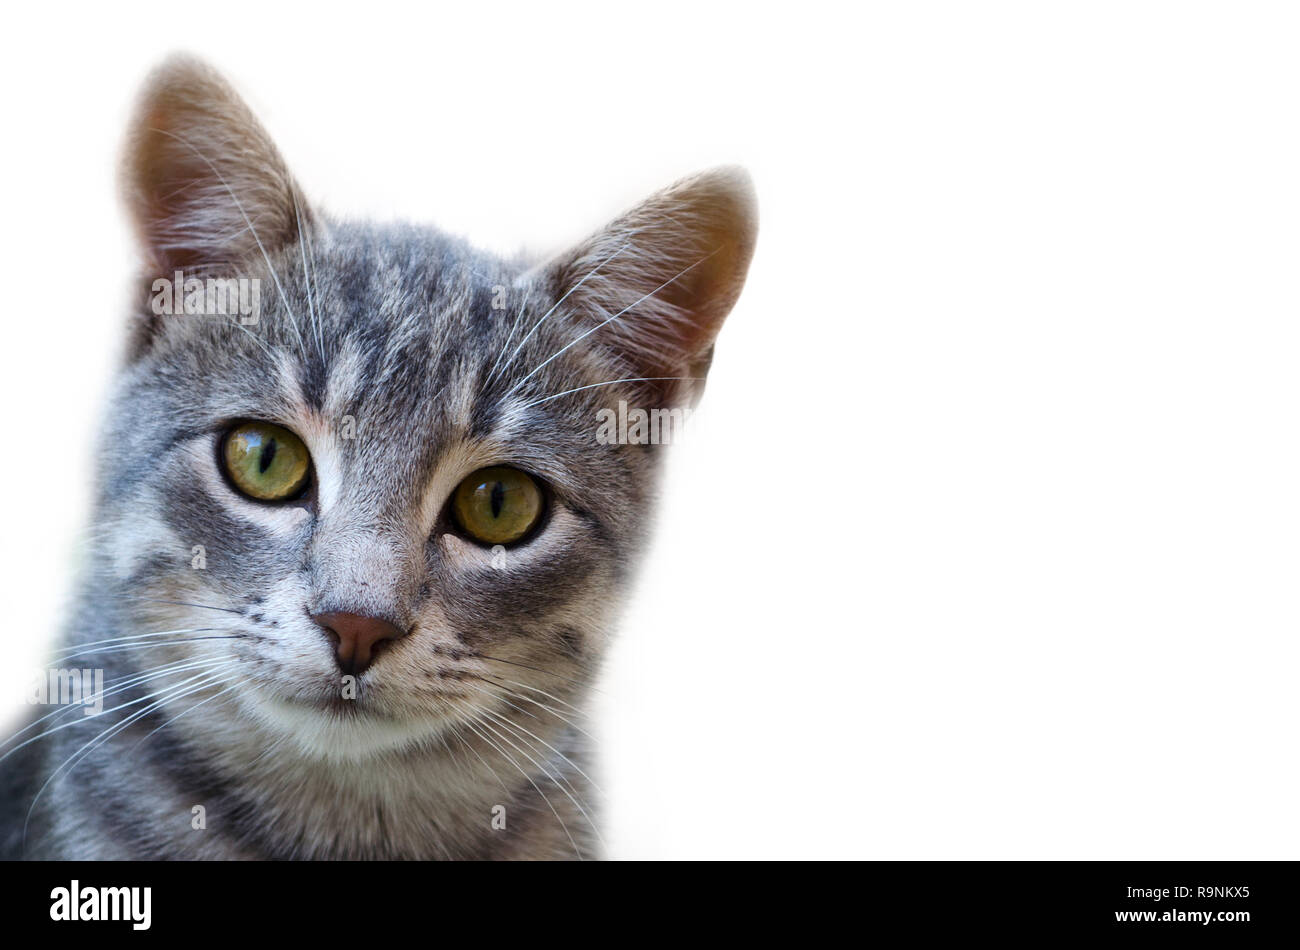 Cute cat looking at the camera isolated on white background Stock Photo